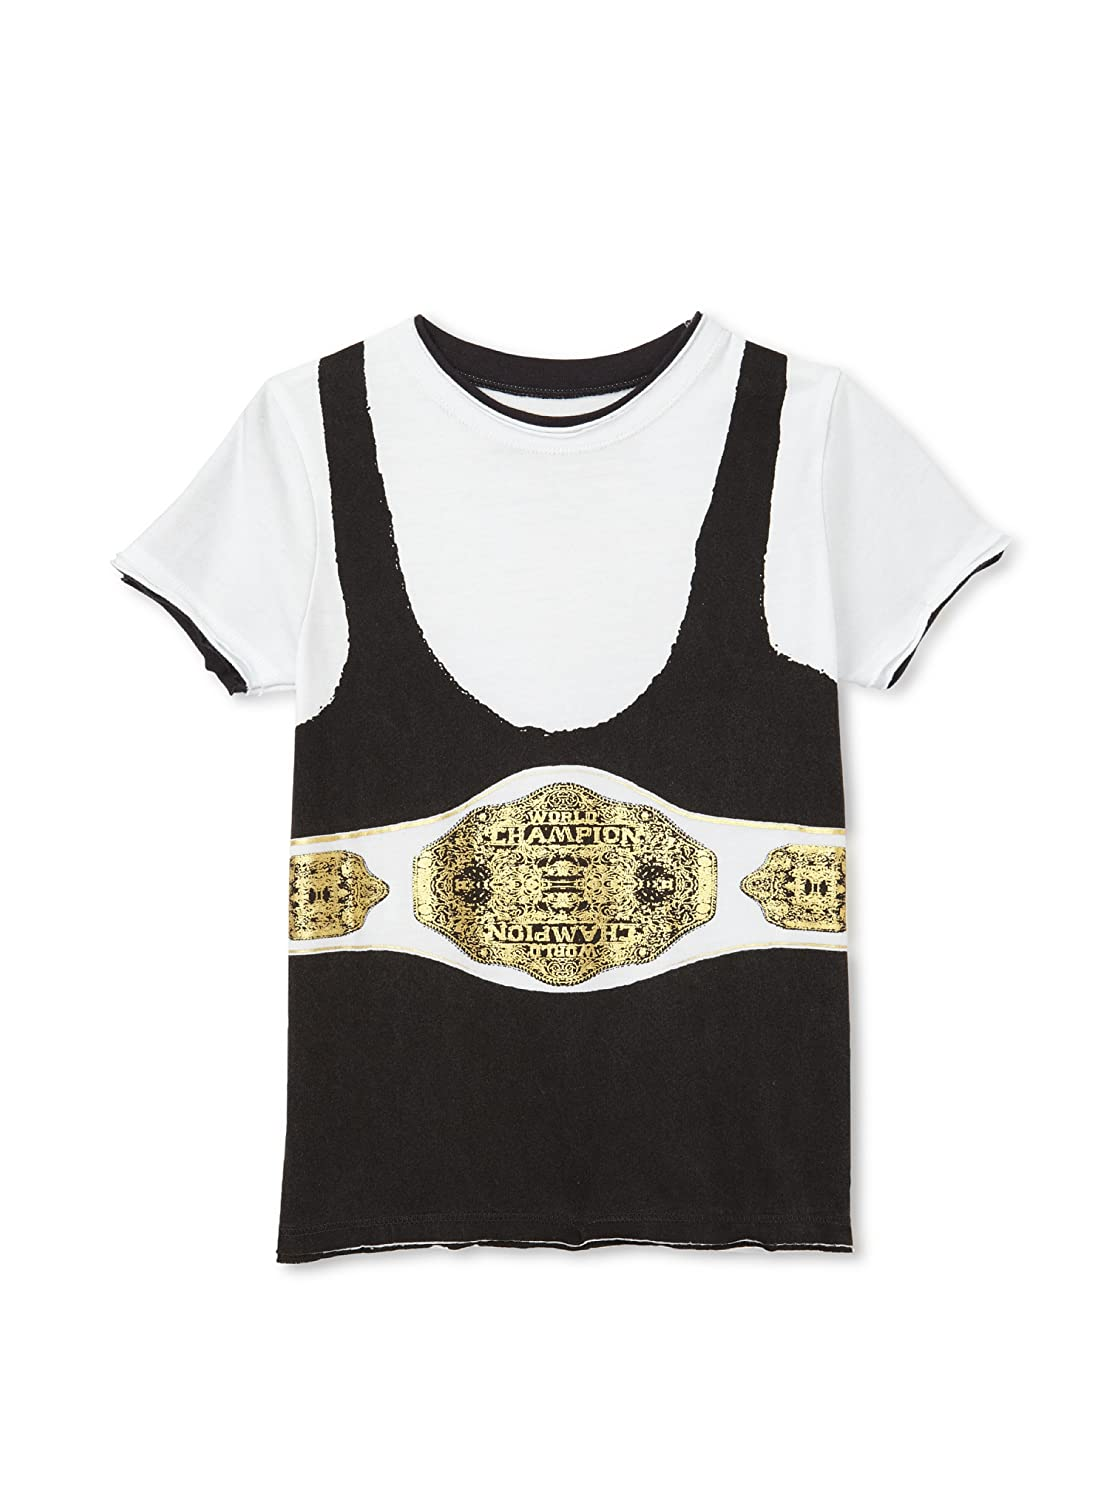 Mini Shatsu Boy's The Champ T-Shirt, White, 8 mini shatsu bat cape long sleeve tee